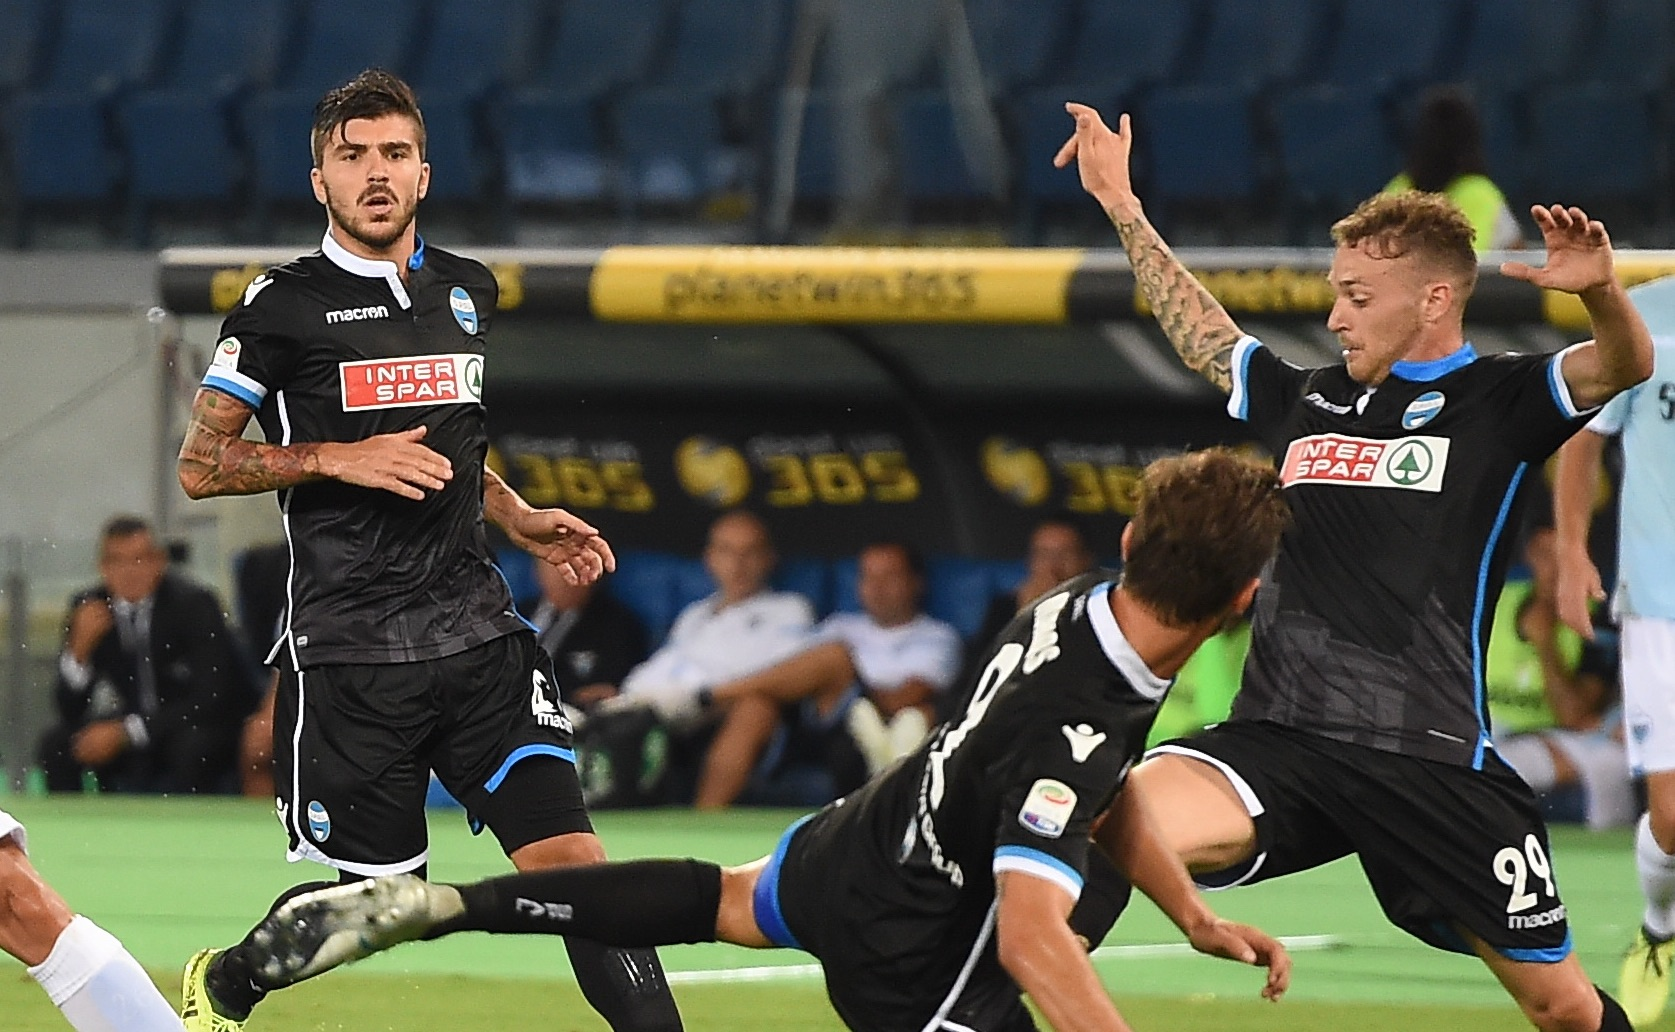 Spal in Serie A